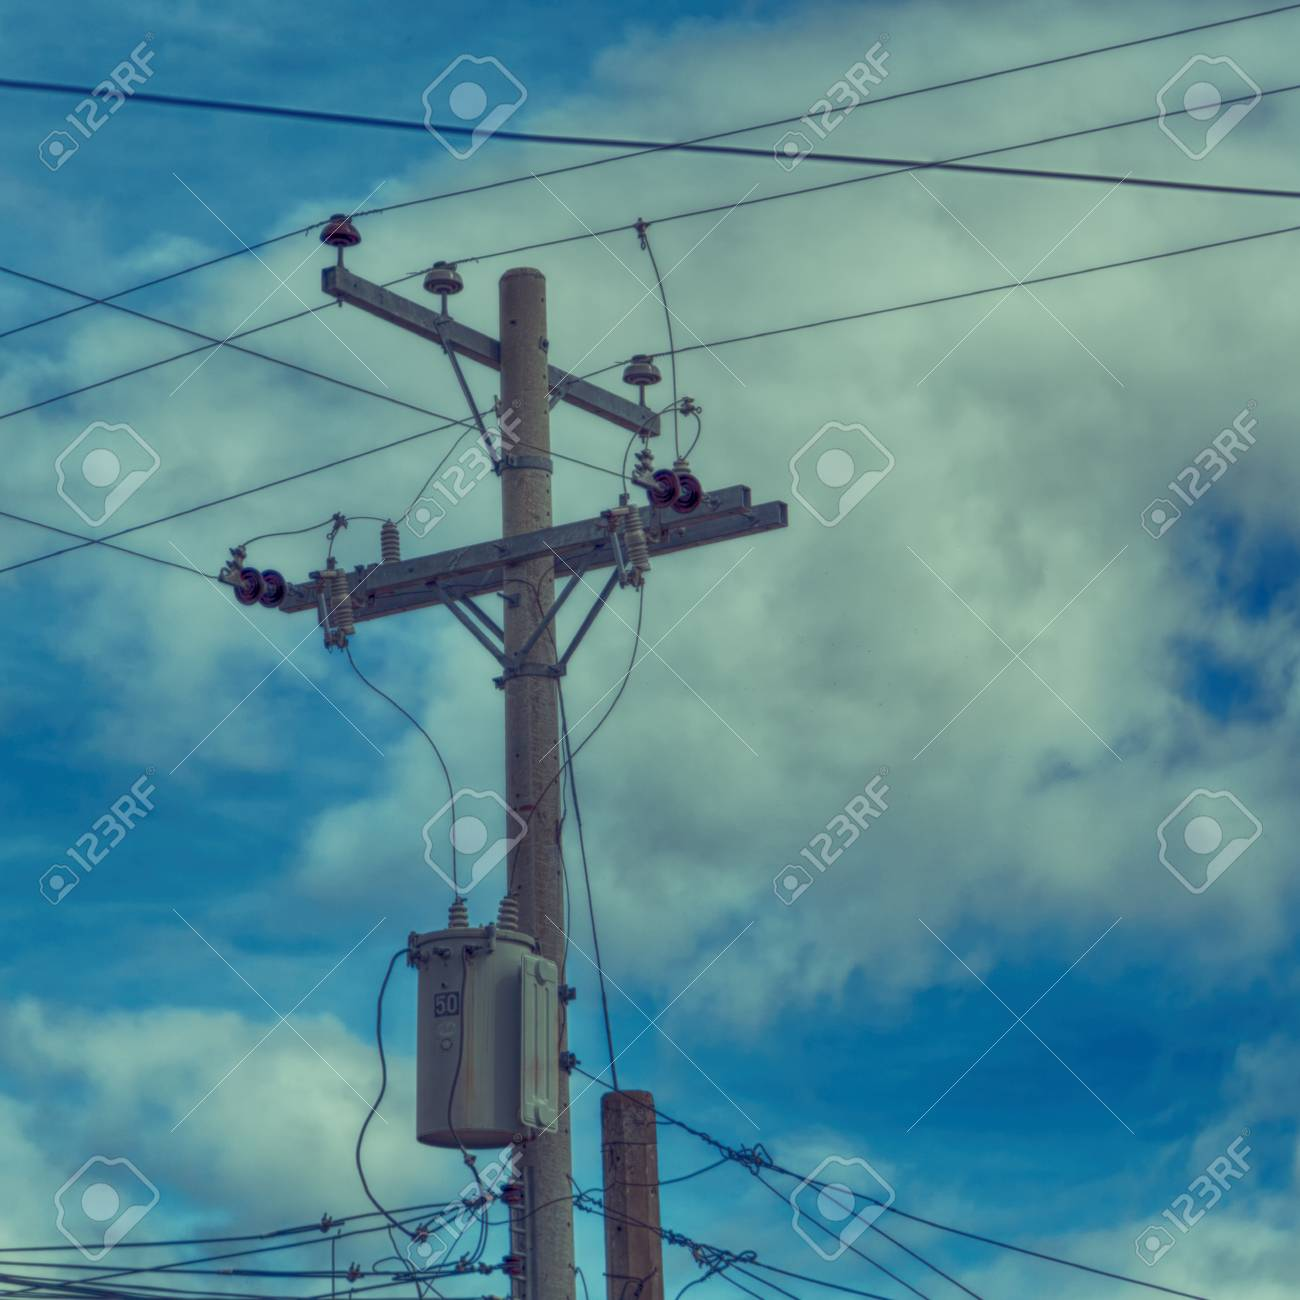 hight resolution of blur in philippines a electric pole with transformer and wire the cloudy sky stock photo